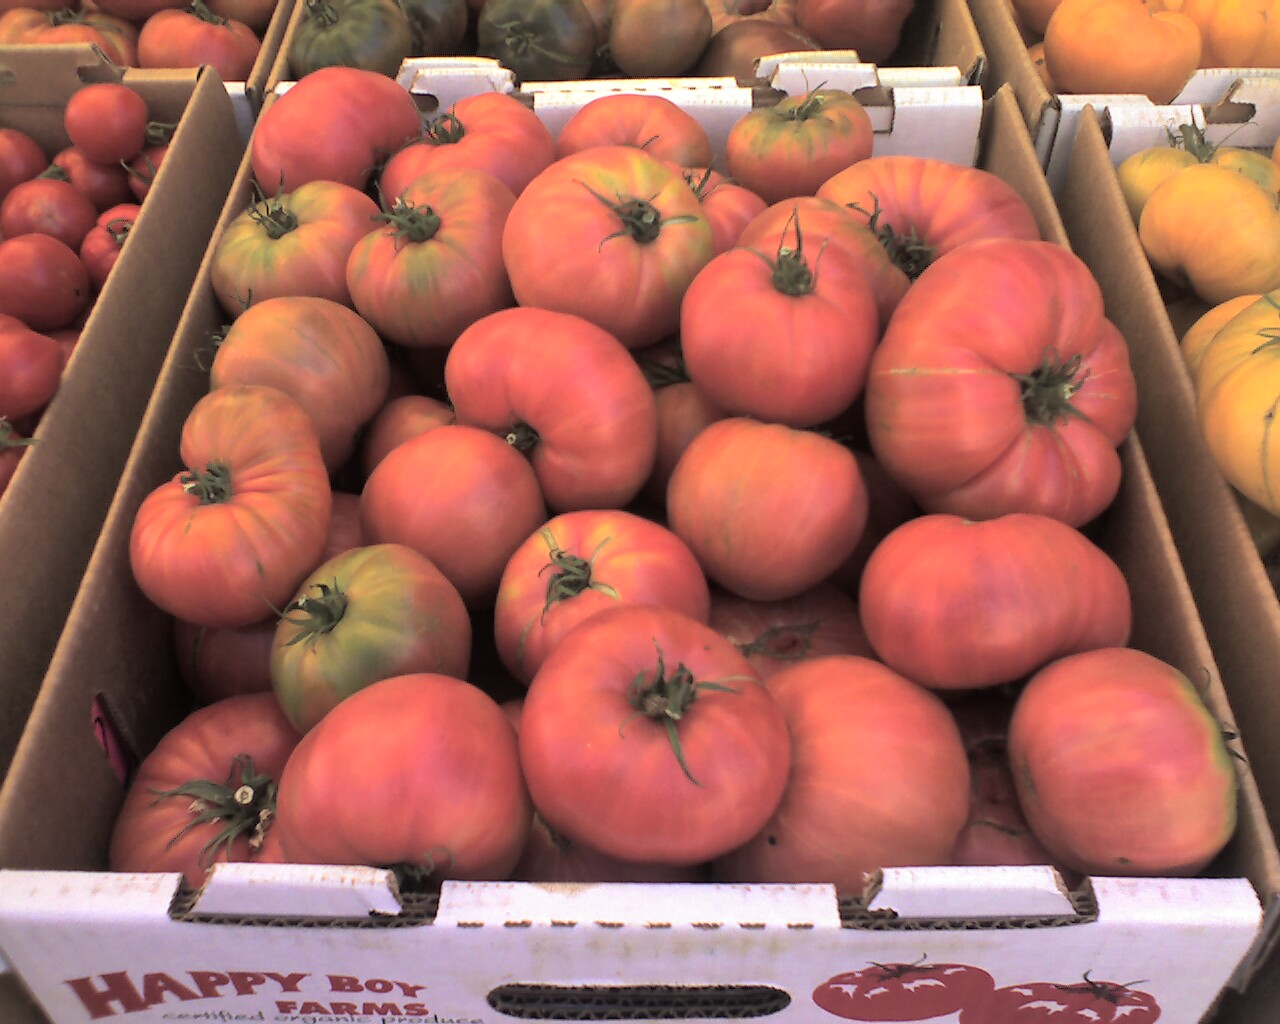 Tomatoes - Visit the Los Gatos Farmer's Market!